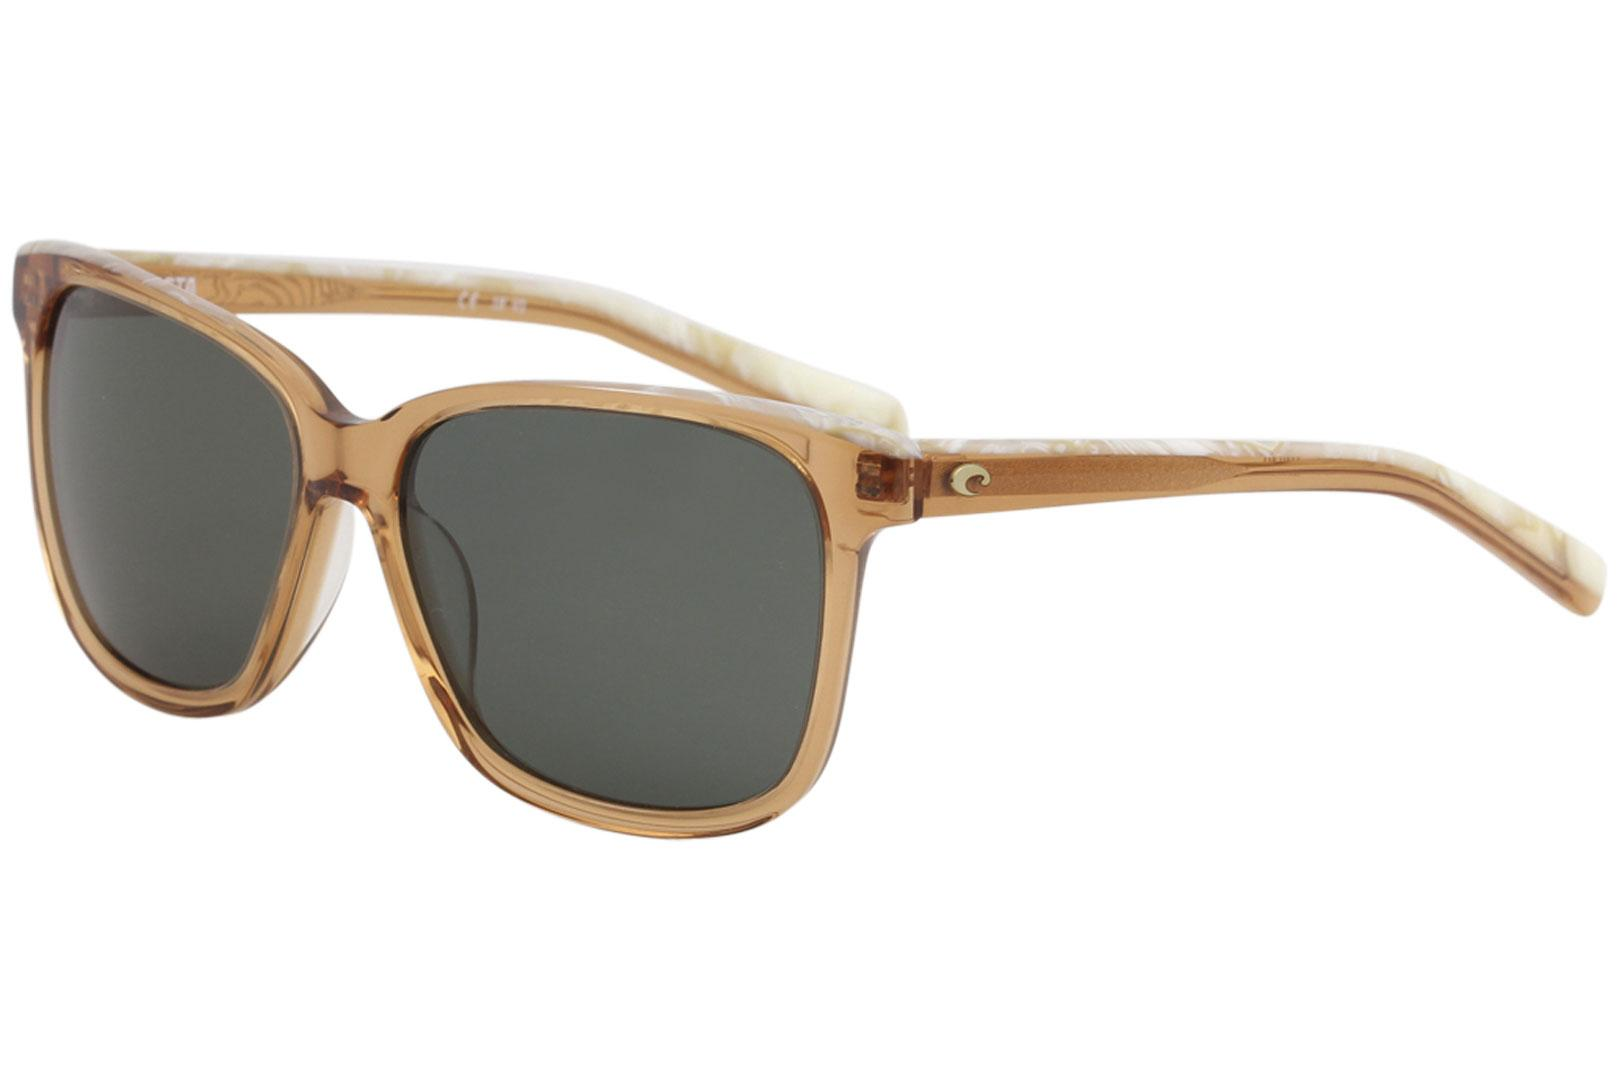 7c018a926f249 ... May Fashion Square Polarized Sunglasses by Costa Del Mar. Touch to zoom